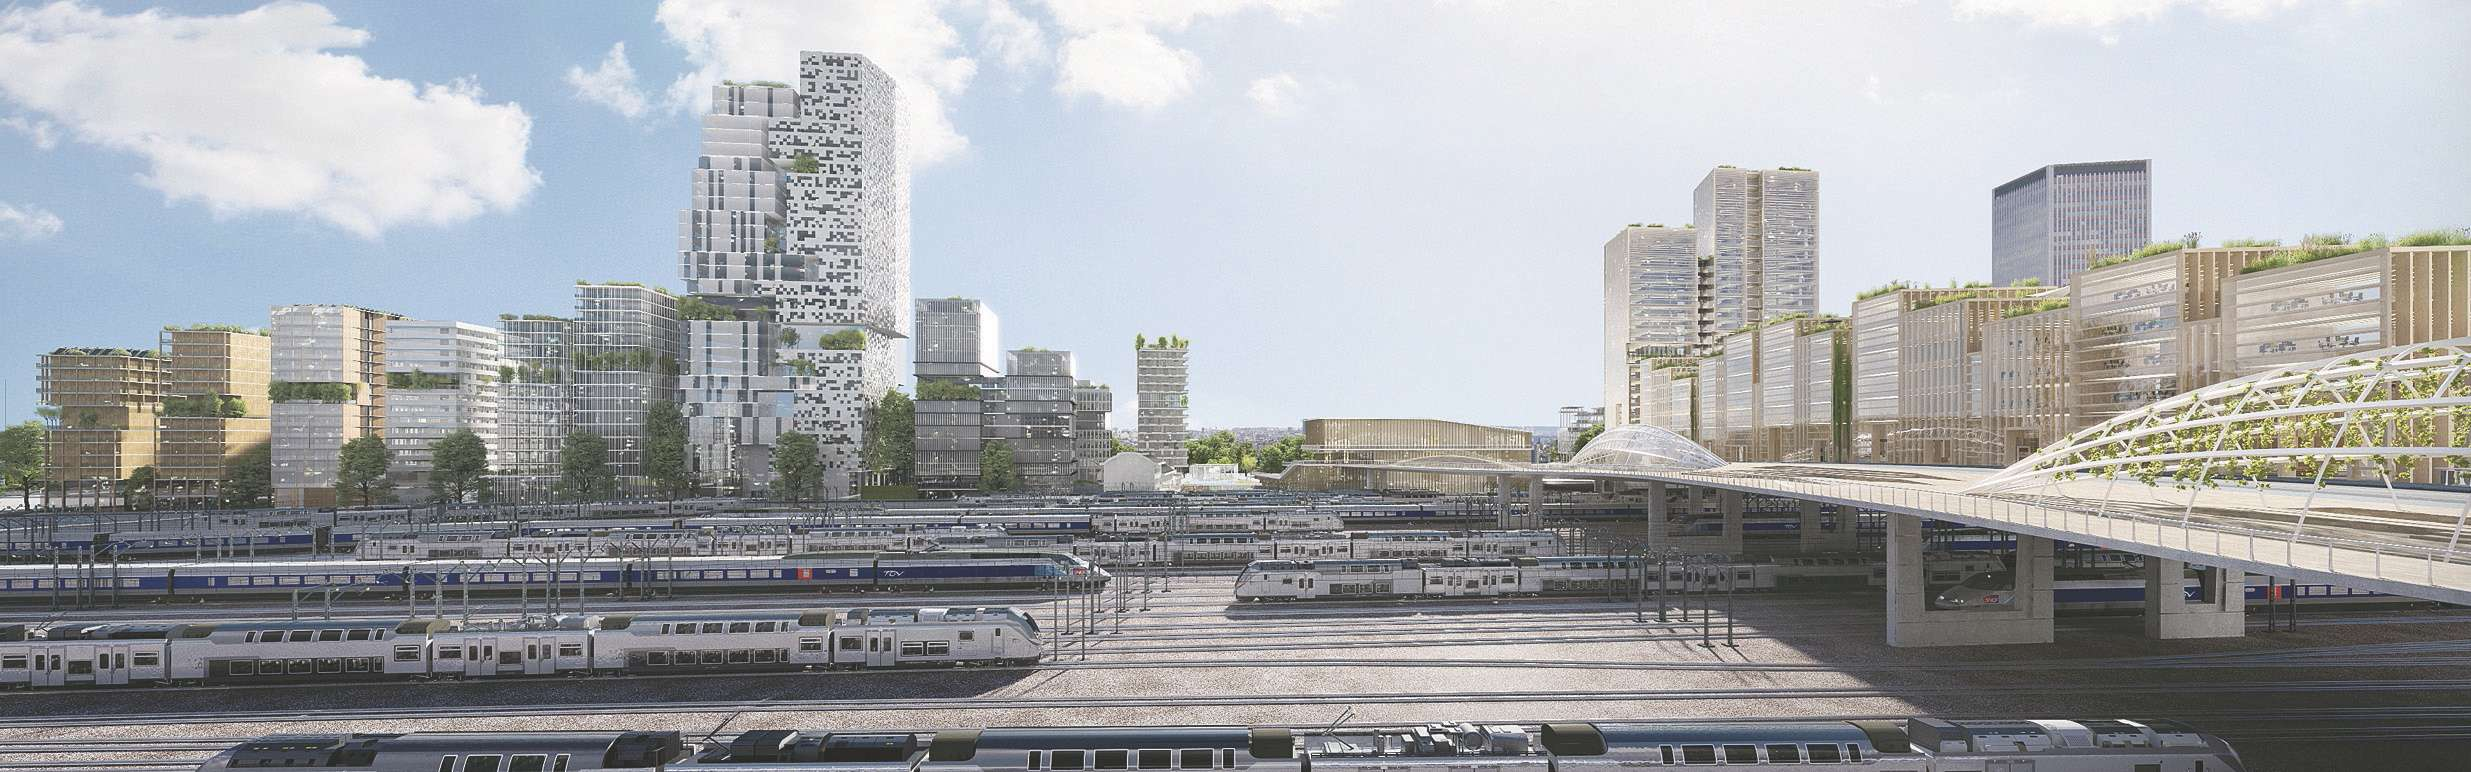 Saint-Denis - Les Lumières Pleyel, un grand quartier express